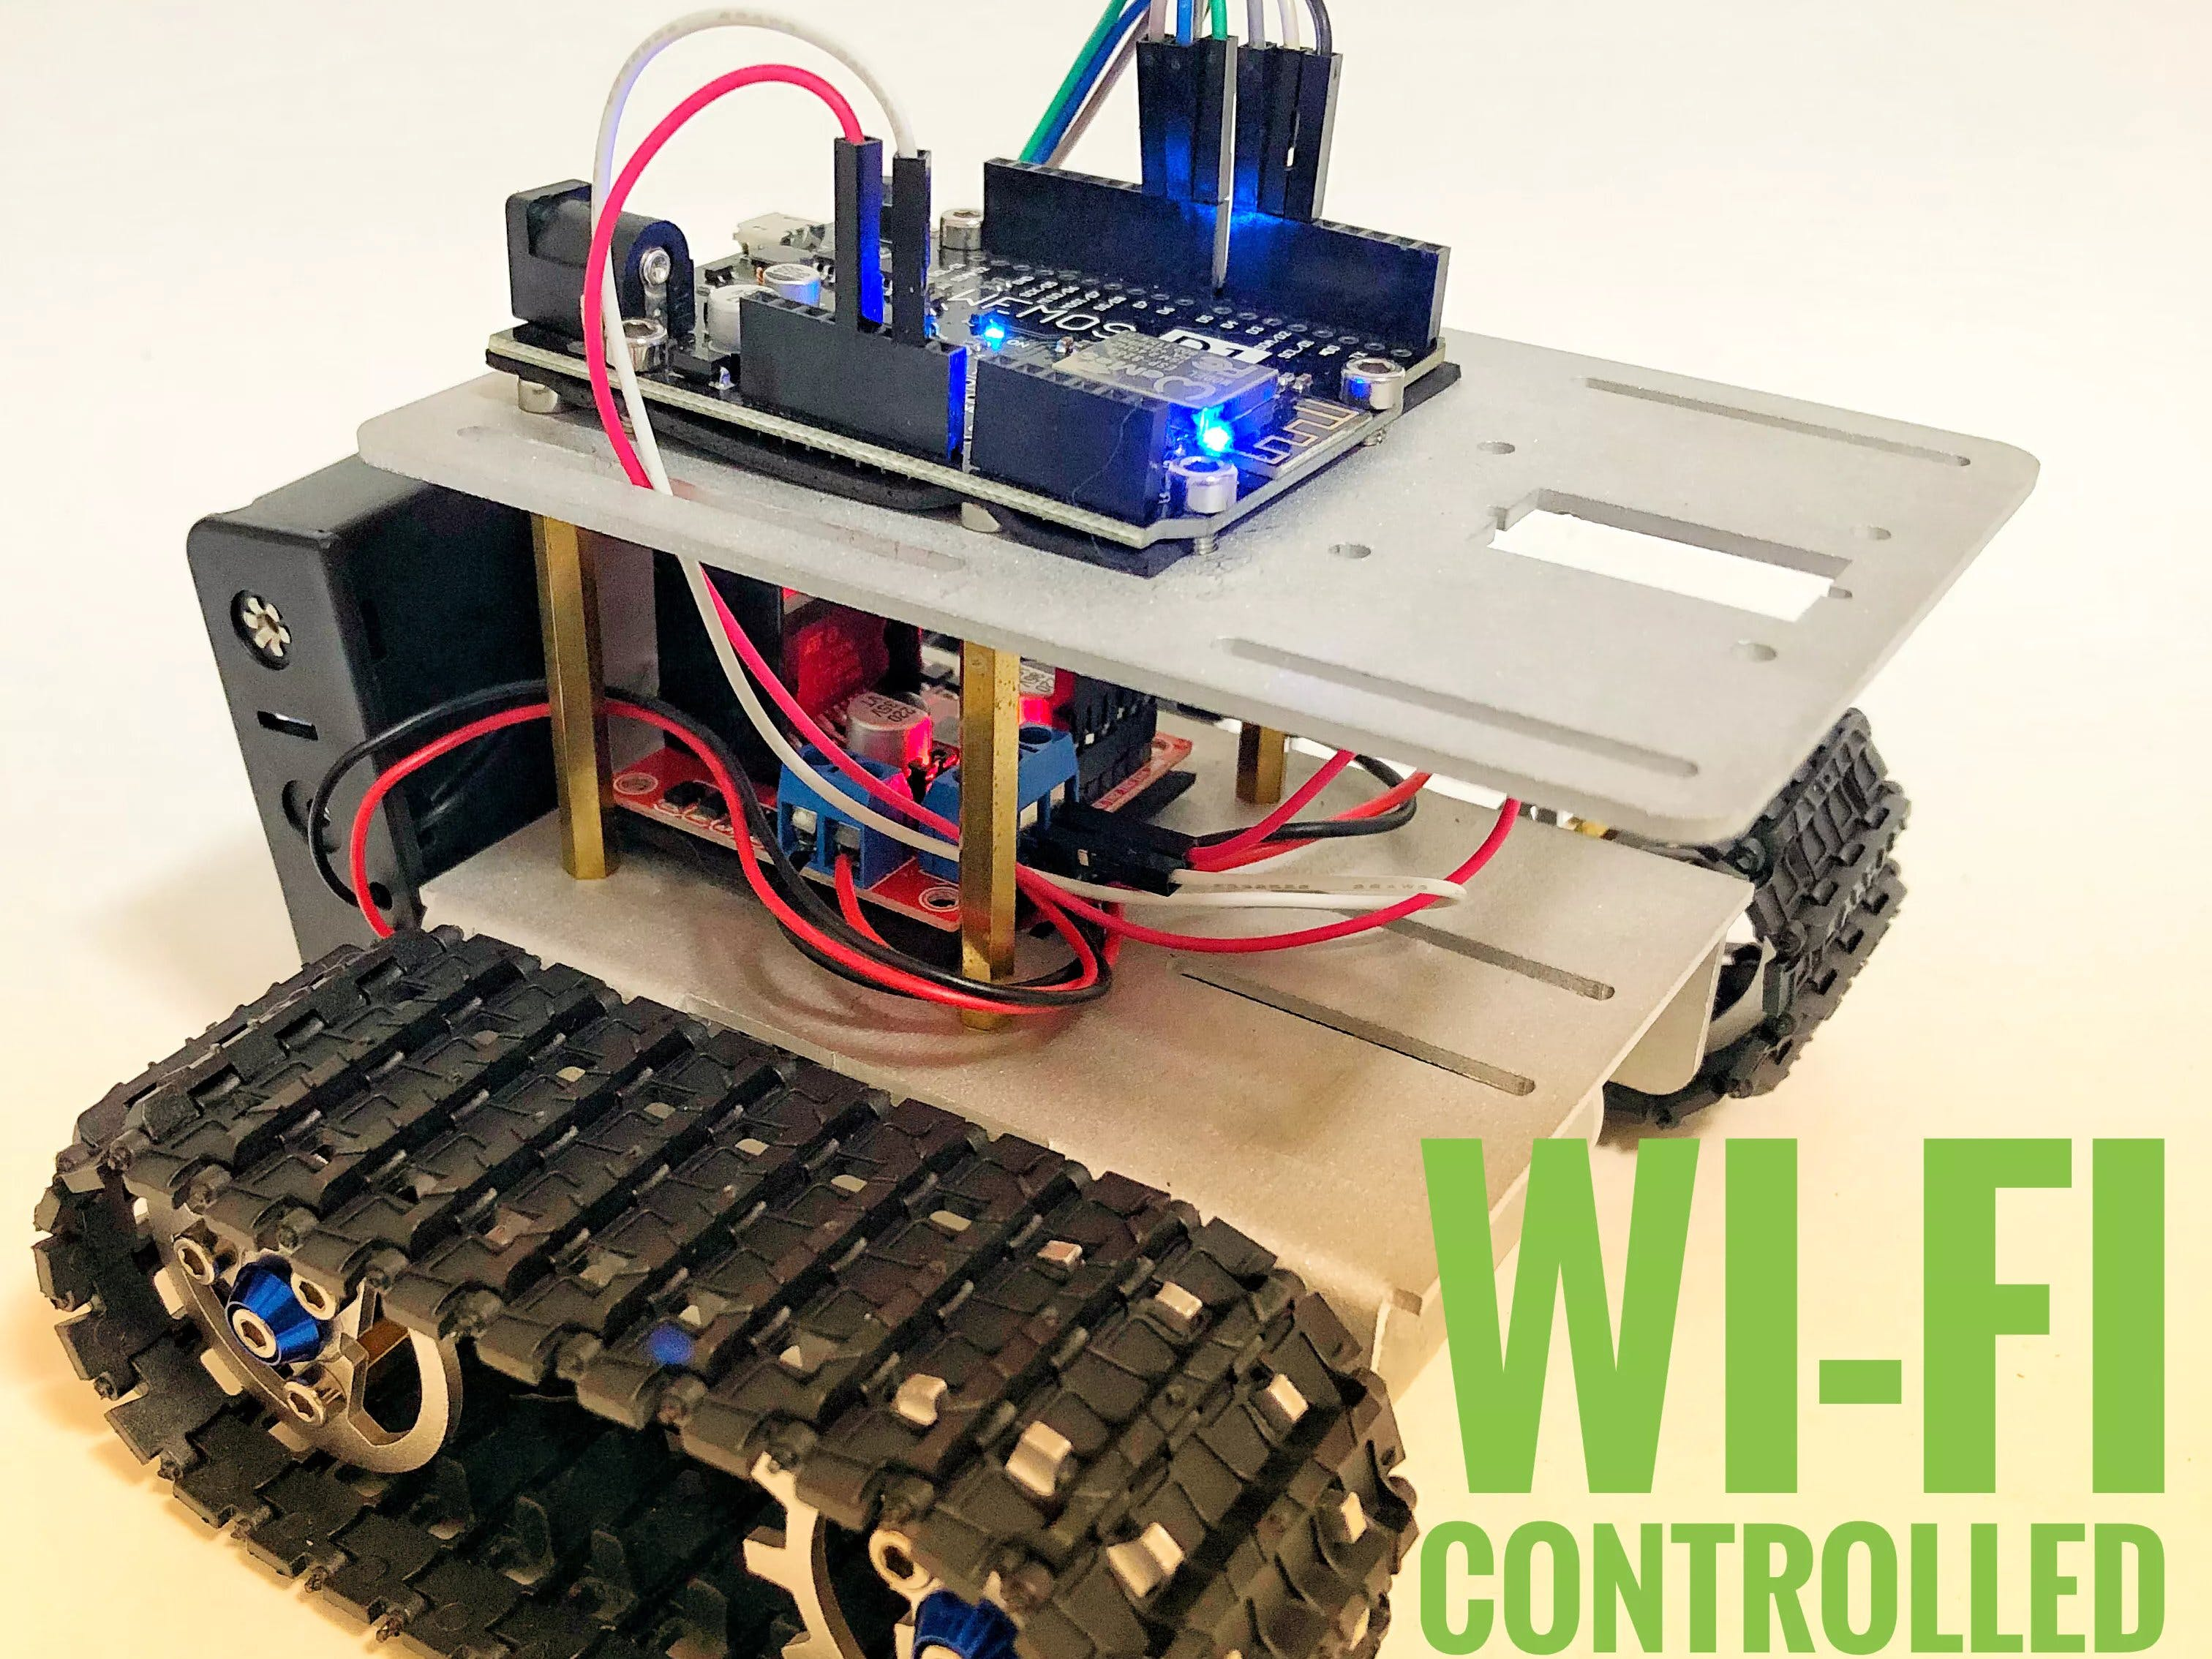 Wi-Fi Controlled Robot Using Wemos D1 ESP8266 and Blynk